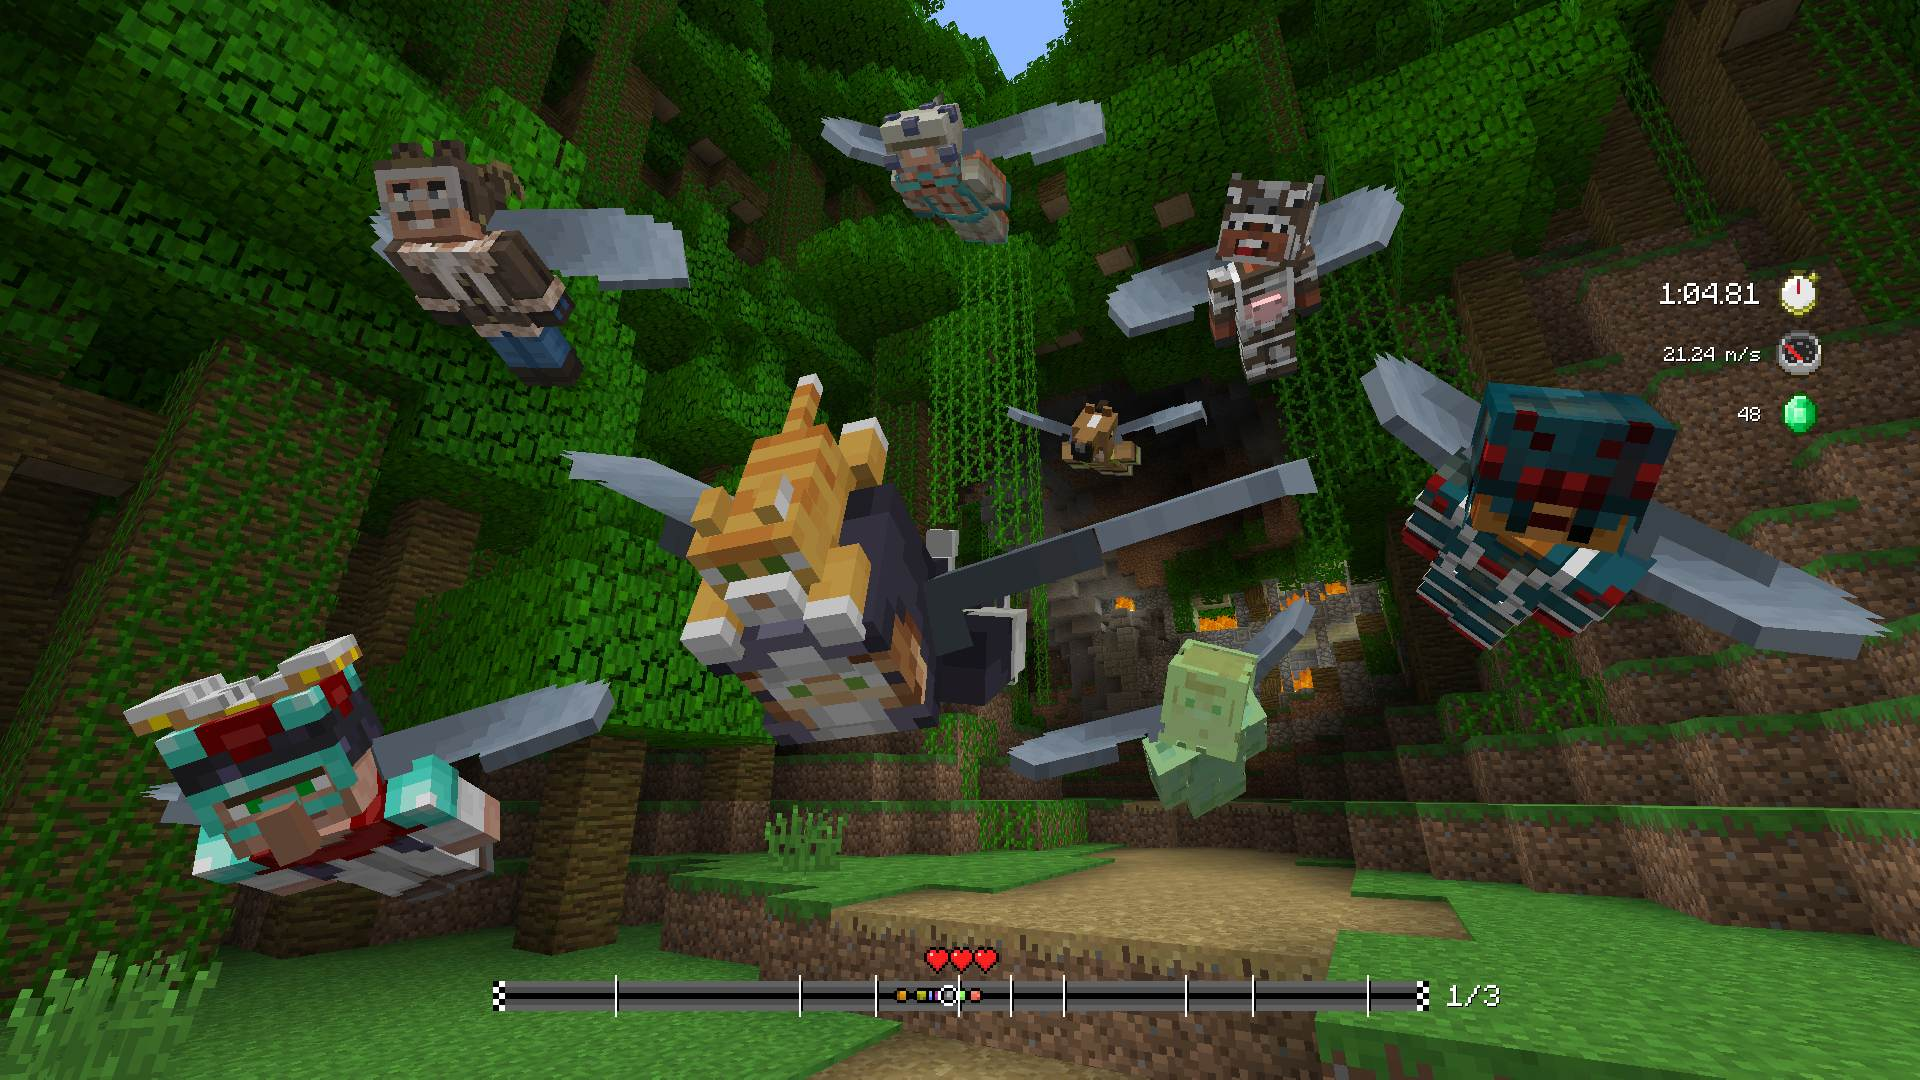 Minecraft Mini Game Heroes Skin Pack On PS Official PlayStation - Minecraft ps4 minispiele